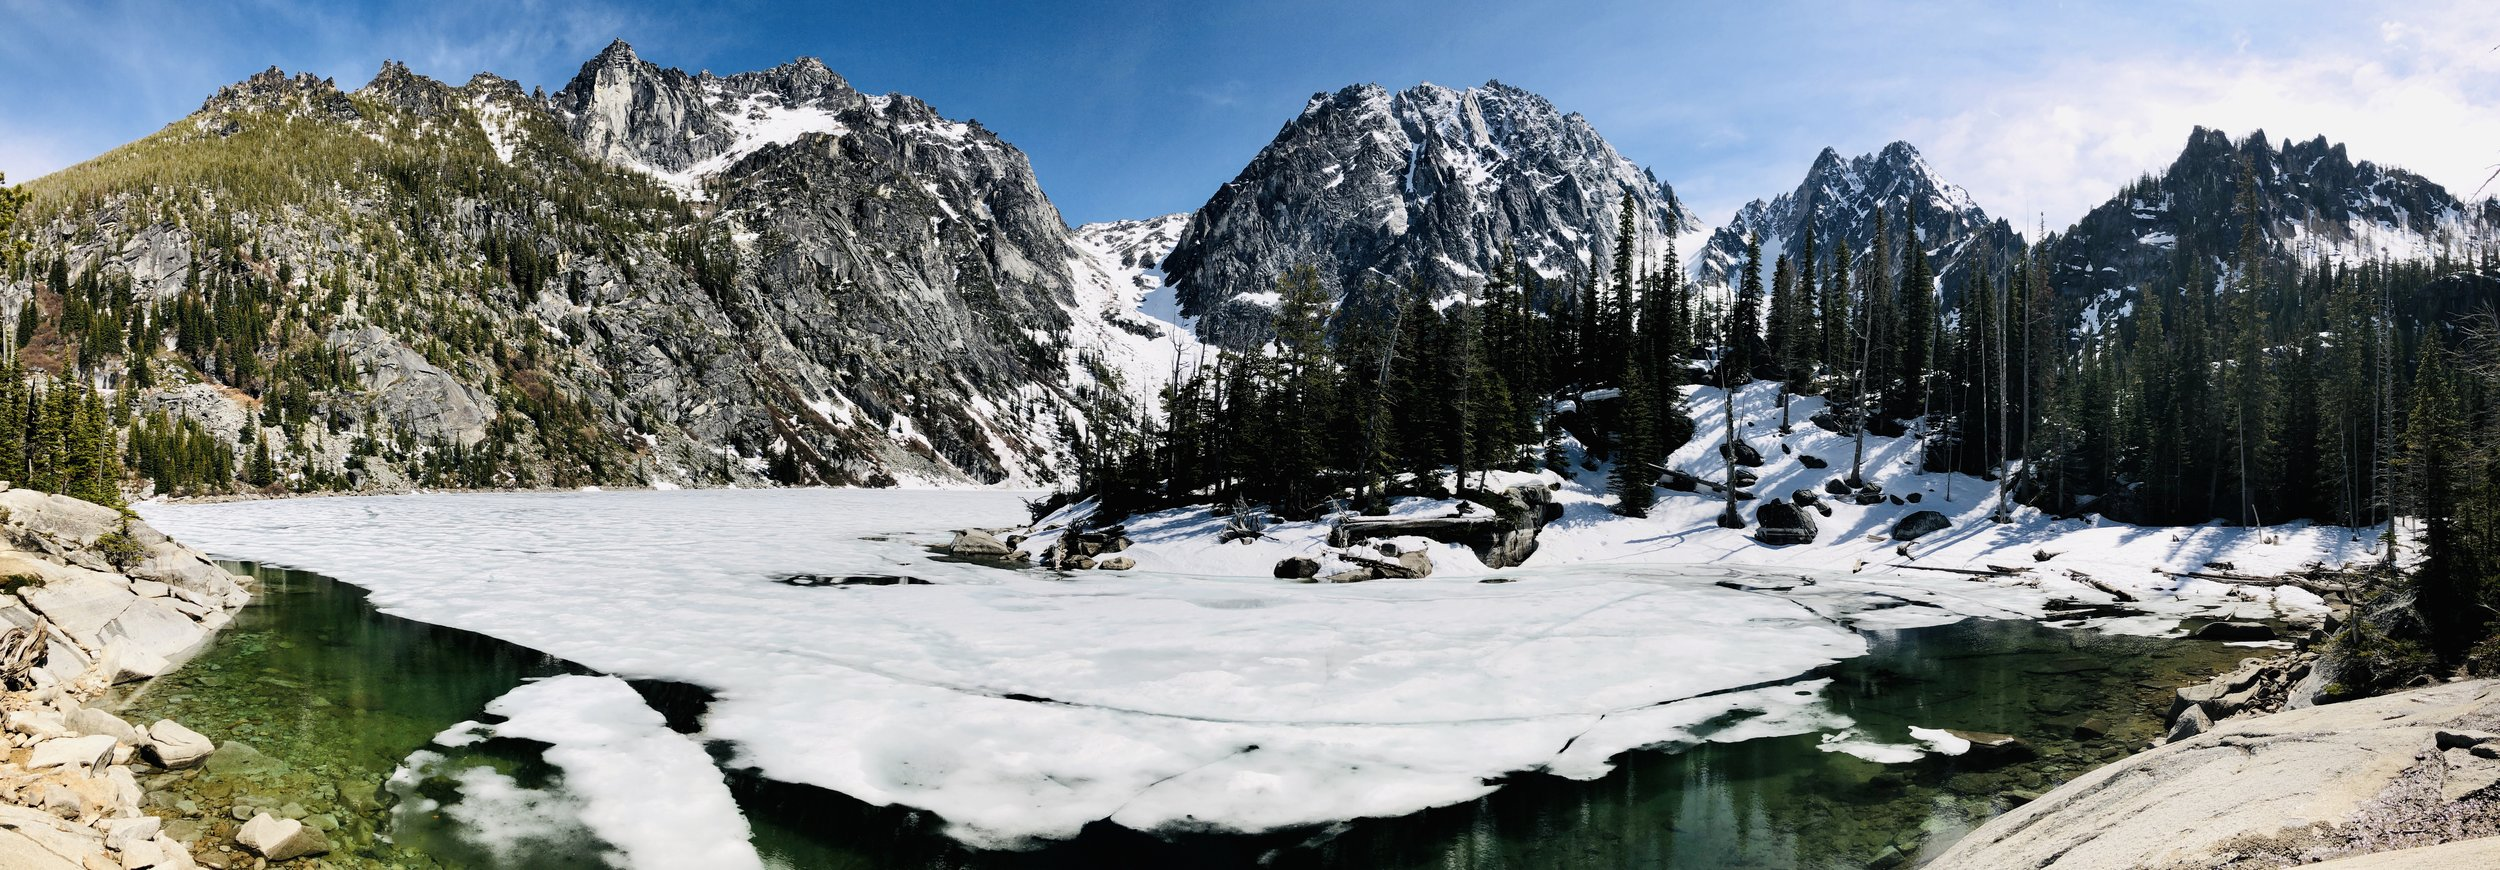 Photo evidence: Will there be snow up at Colchuck Lake in May? Probably. But maybe not!